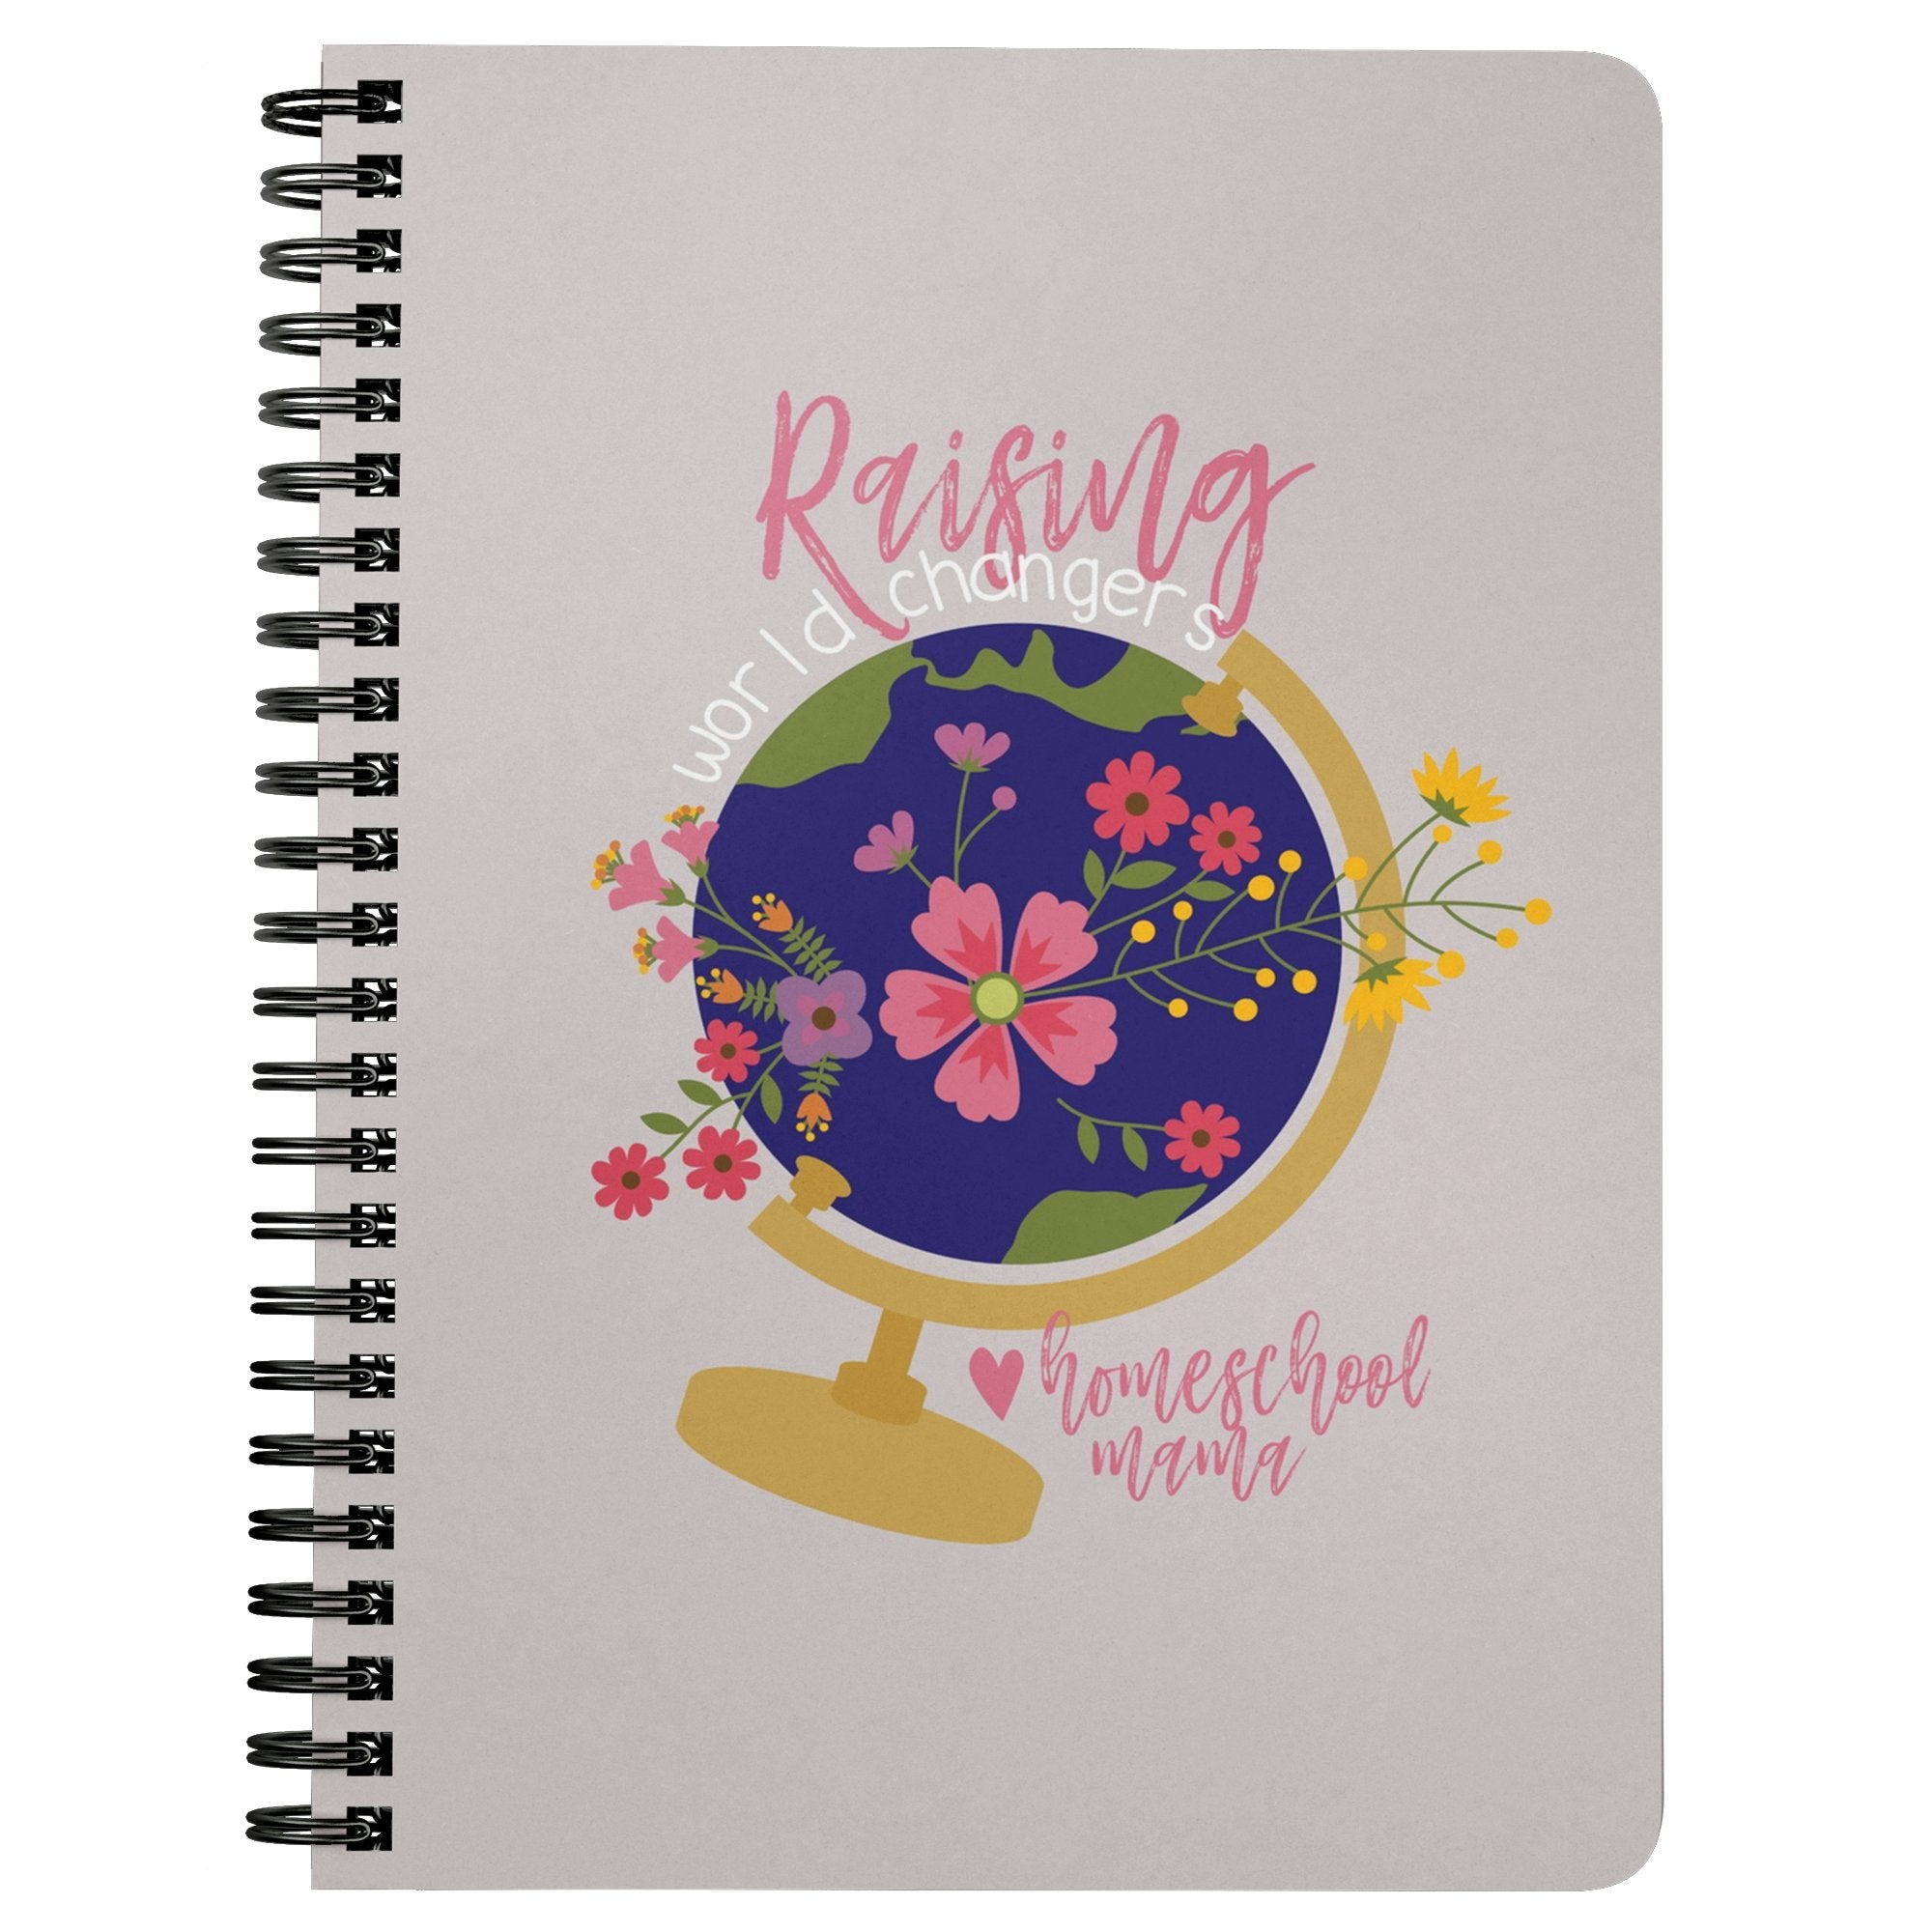 Homeschool Mama Spiralbound Notebook - Homeschool Style Co.